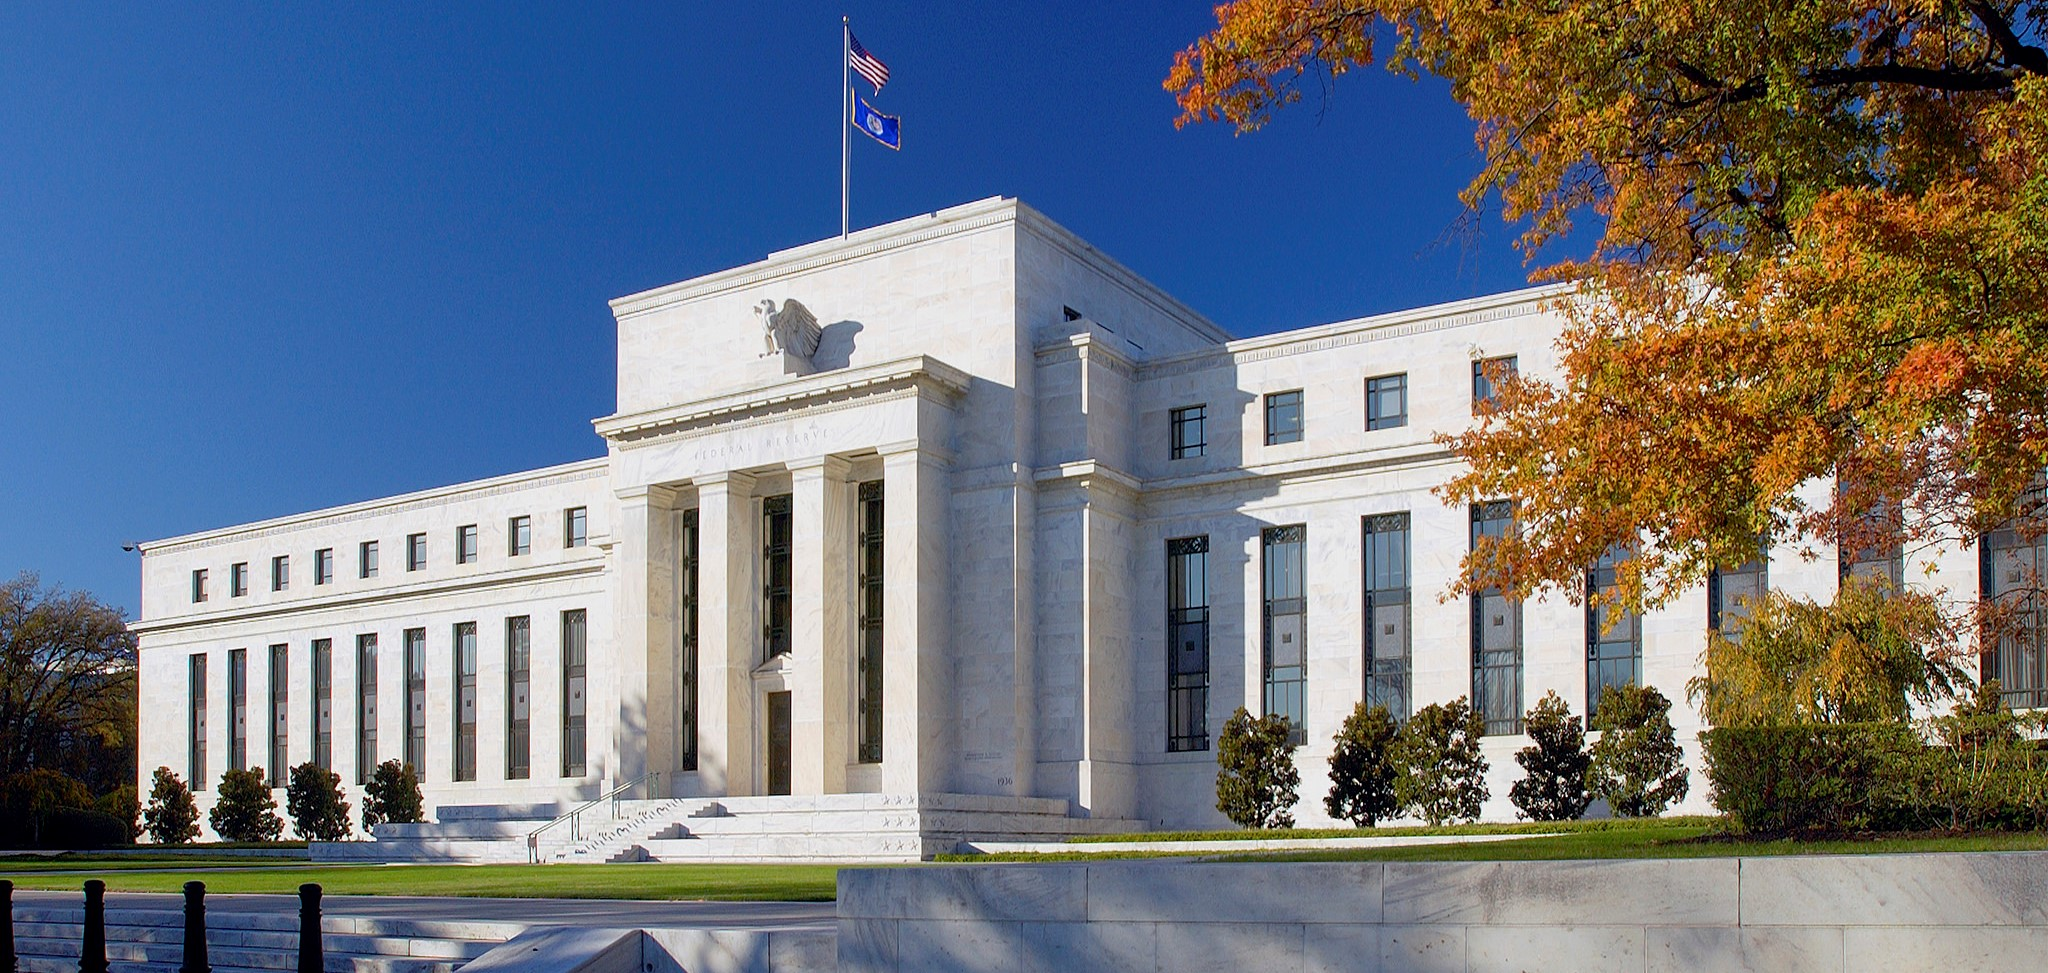 The Marriner S. Eccles Federal Reserve Board Building (Photo: Flickr/Federalreserve)